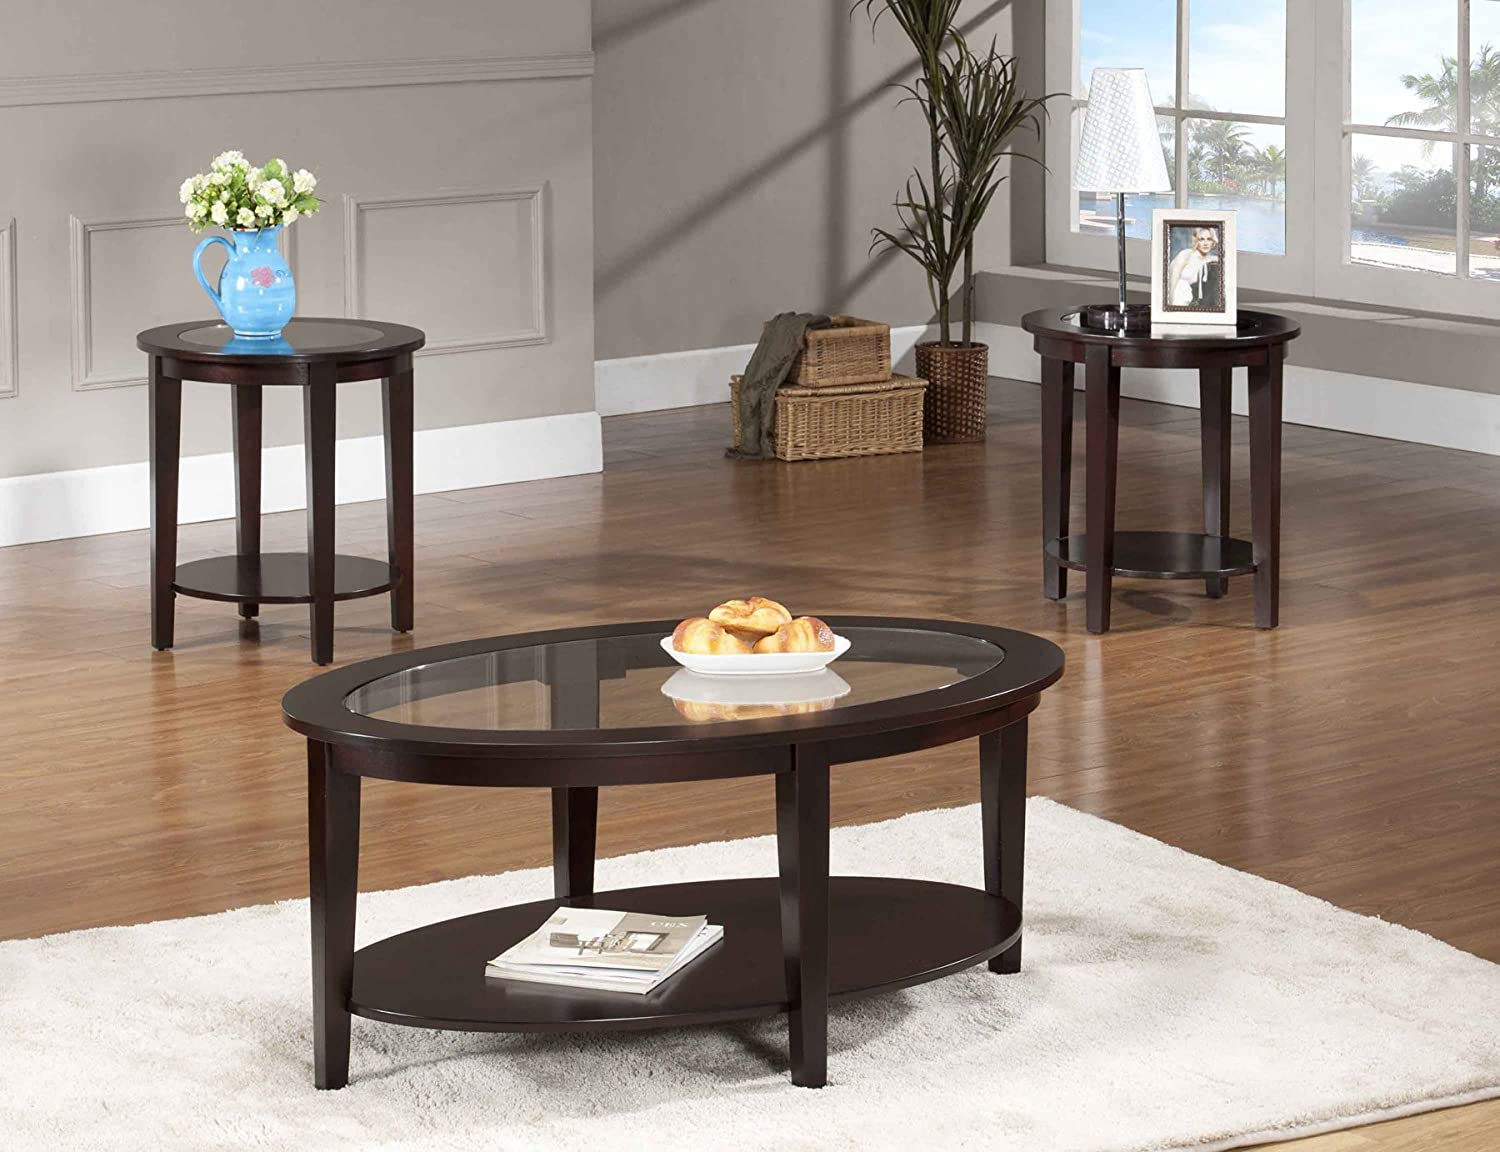 Amazon.com: Beverly Furniture Oval Modern Glass 3-Piece Coffee ...